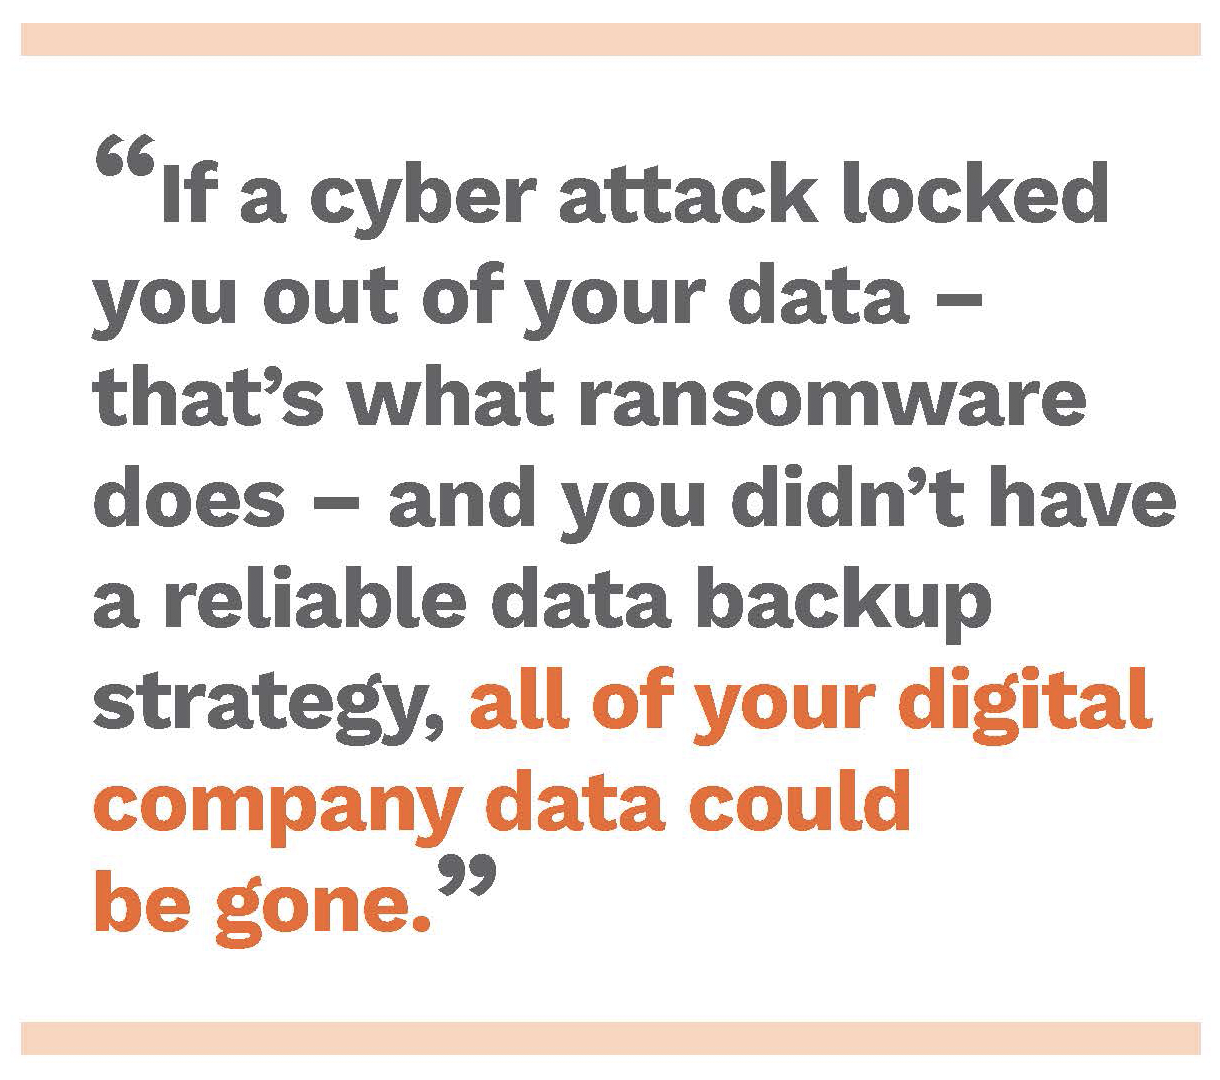 Ransomware can lock all of your company information. Free eBook